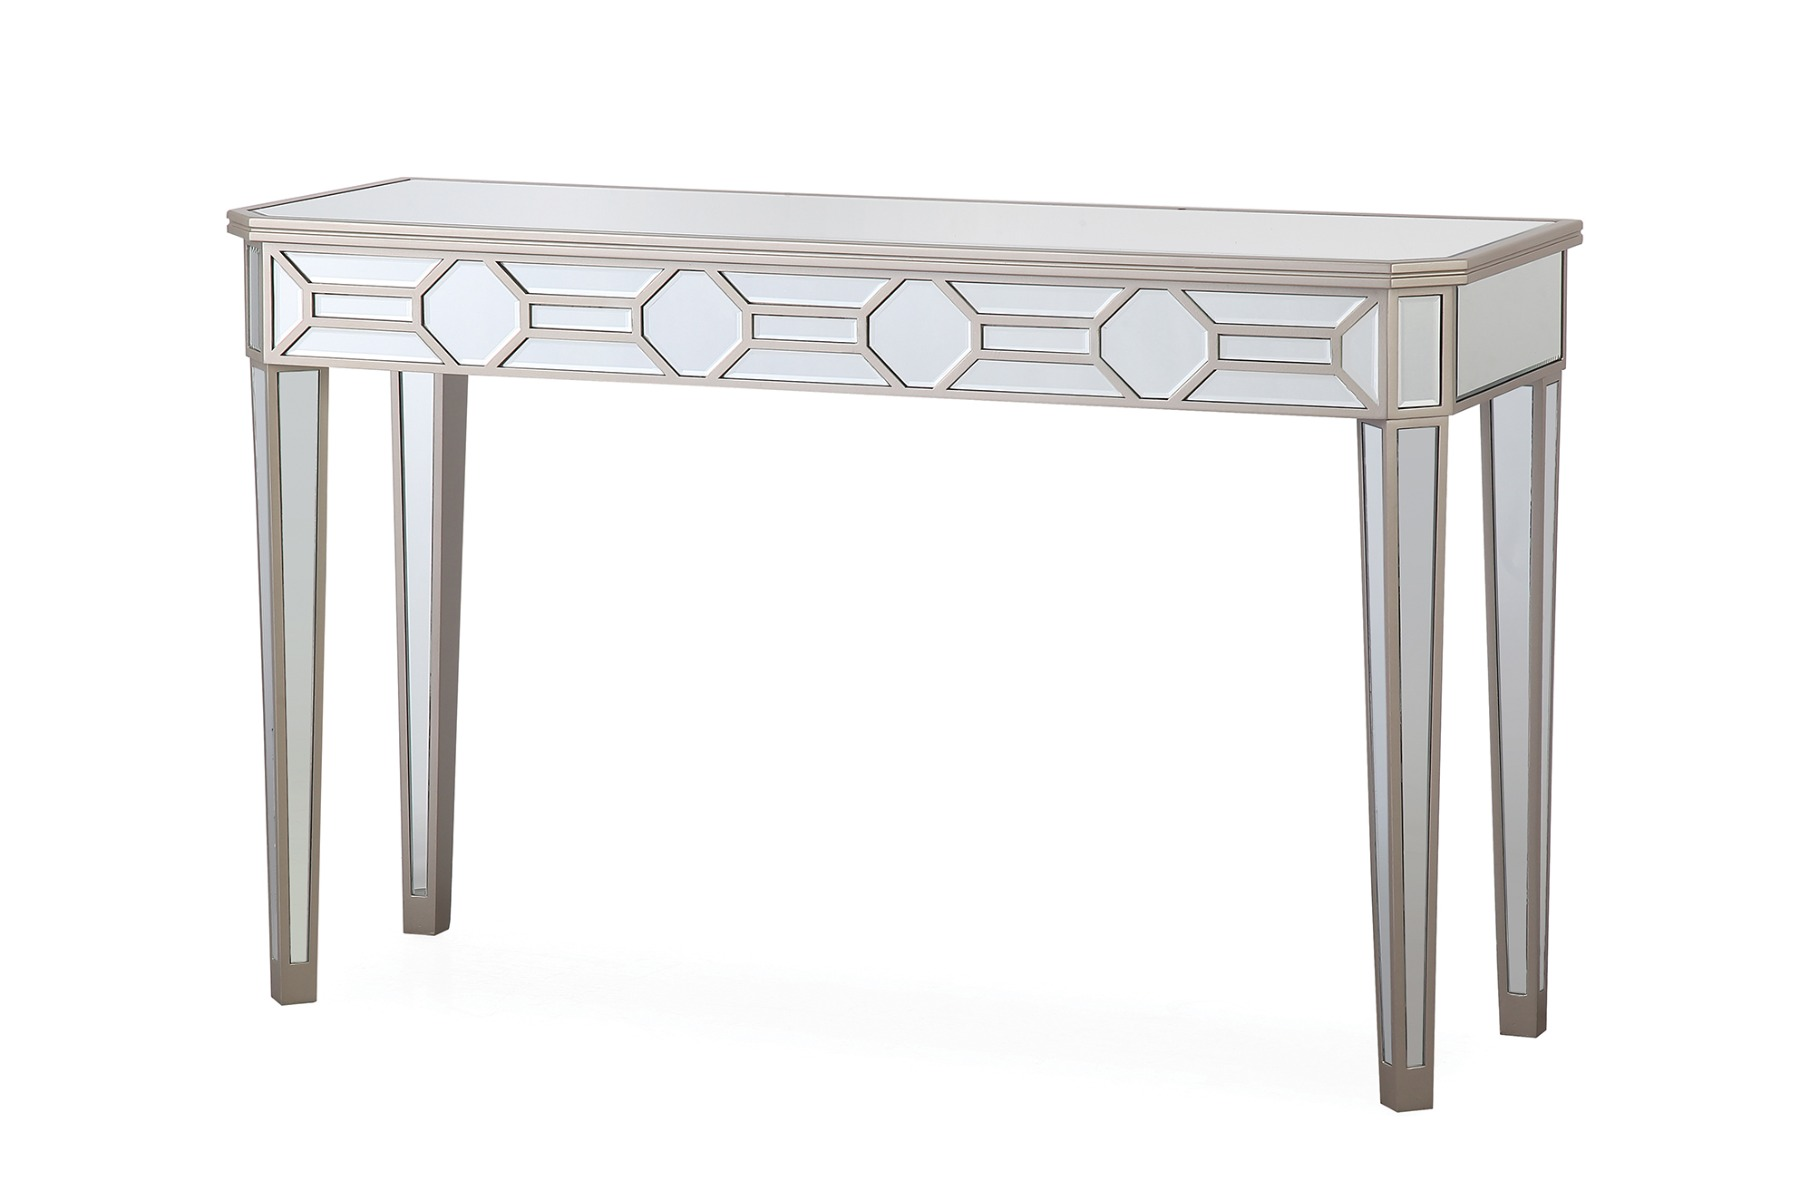 Axdwfd Console table Marble Console Table, Corridor Side Table, Wall Table, Hotel Side View Table, Narrow Table (Color : A)